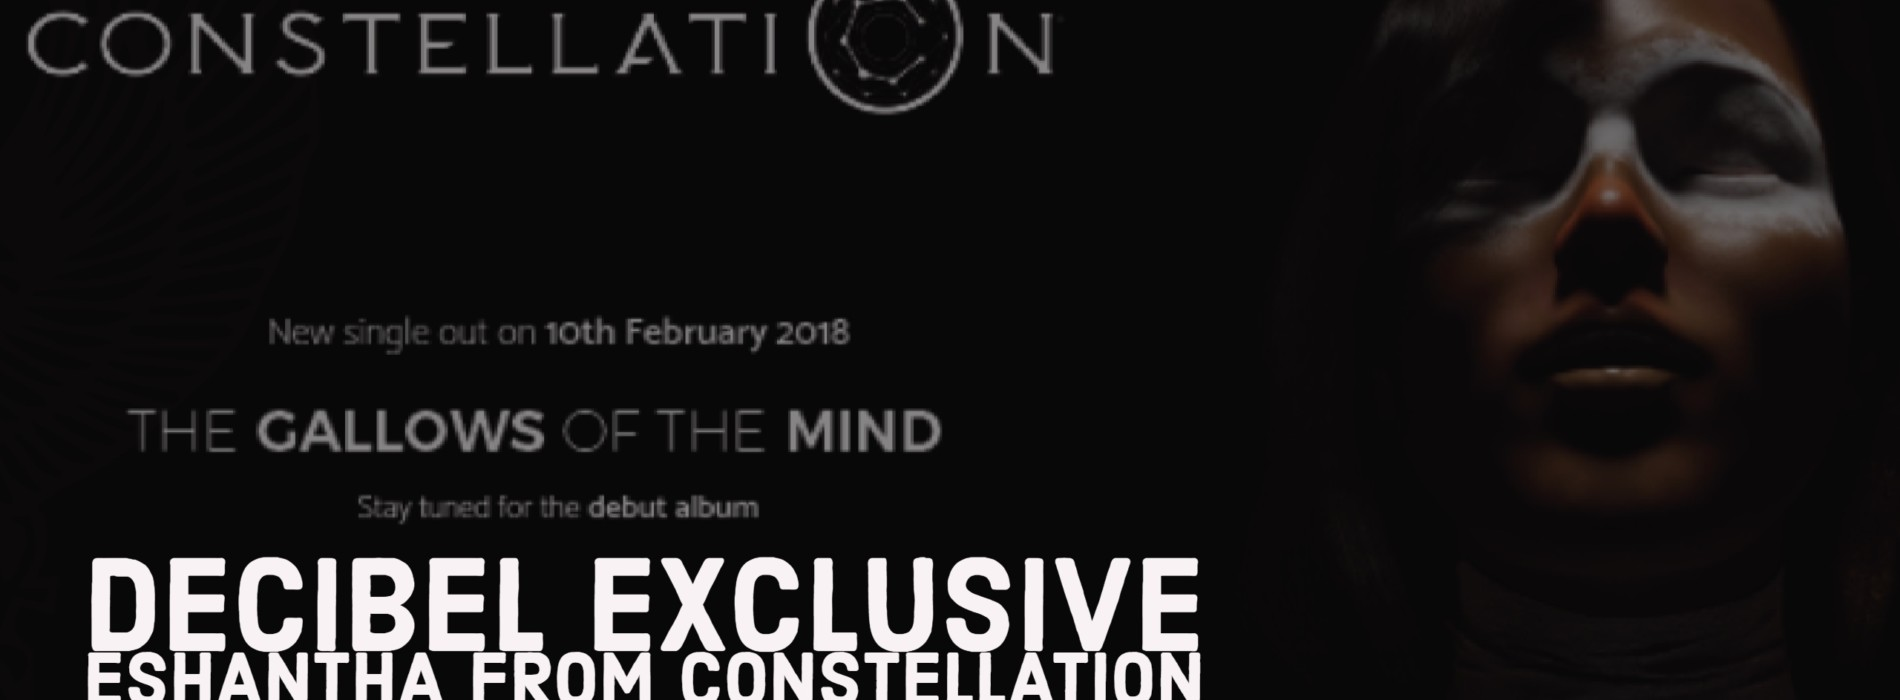 Constellation Is On The Verge Of Releasing New Music, Here's Eshantha With The Scoop